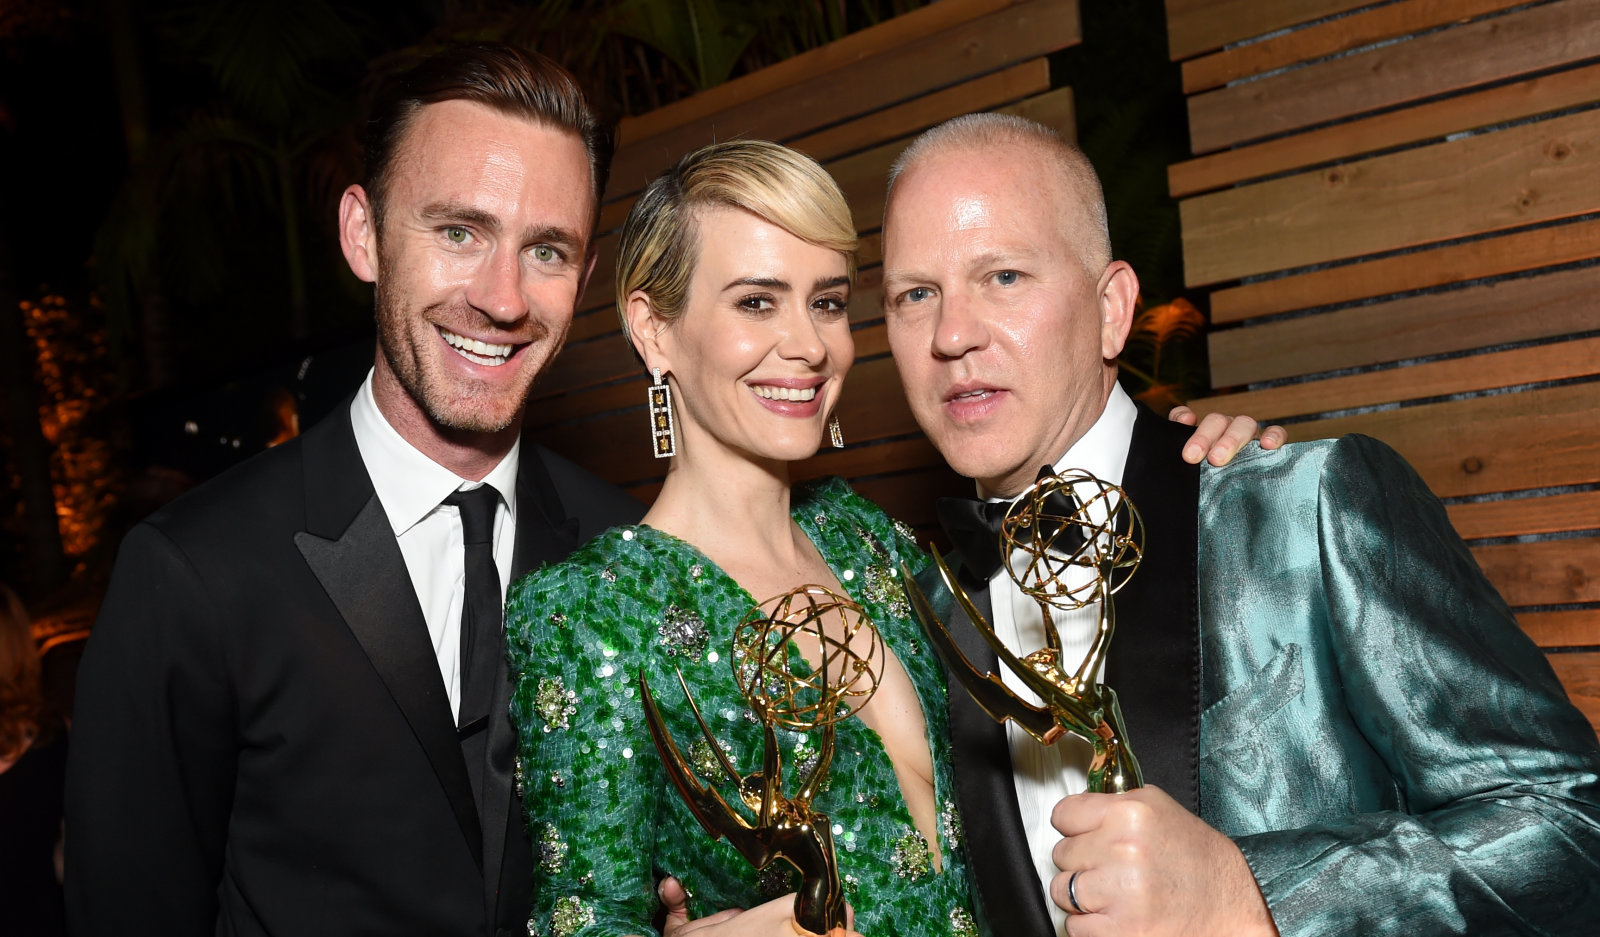 LOS ANGELES, CA - SEPTEMBER 18: Writer John Gray, actor Sarah Paulson and actor Ryan Murphy attends the FOX Broadcasting Company, FX, National Geographic And Twentieth Century Fox Television's 68th Primetime Emmy Awards after Party at Vibiana on September 18, 2016 in Los Angeles, California.  (Photo by Emma McIntyre/Getty Images)